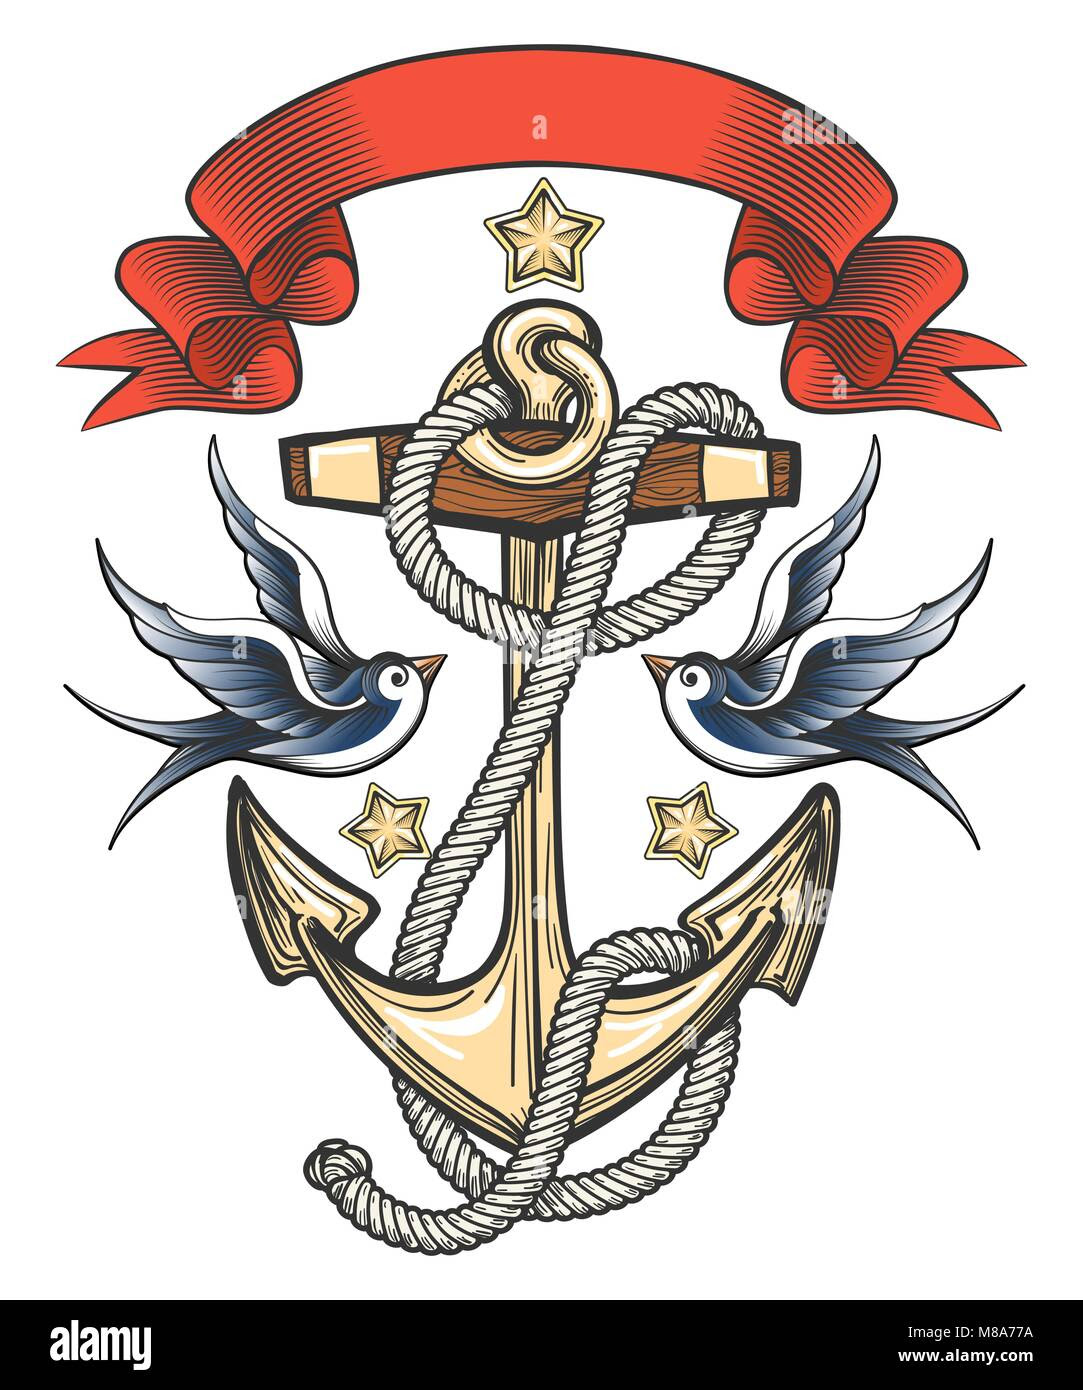 Anchor With Swallows And Ribbon Tattoo Design Vector Illustration